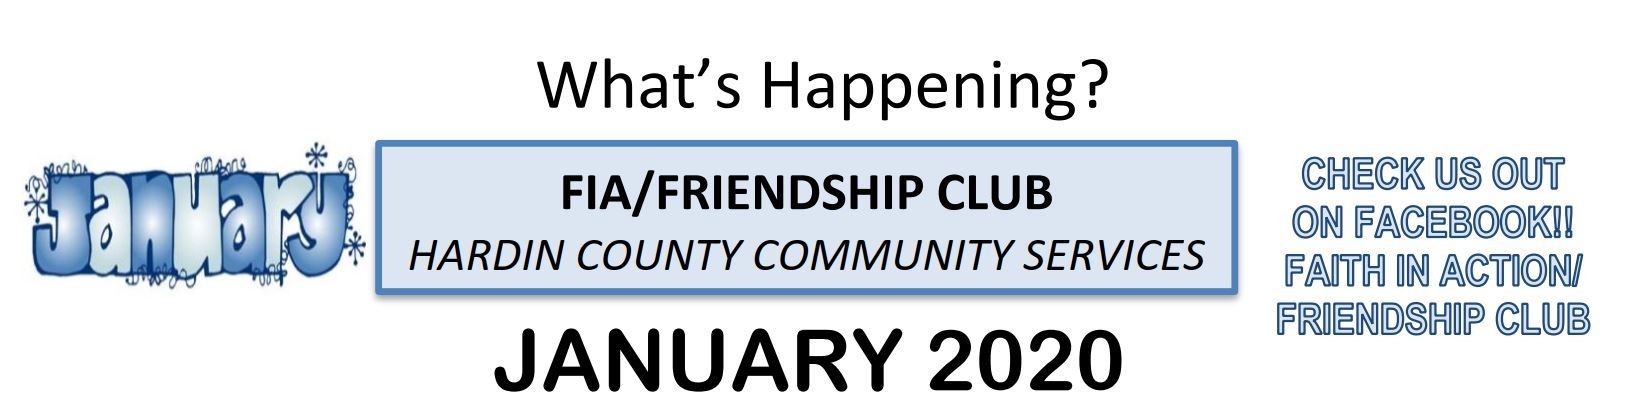 2020-01 Friendship Club